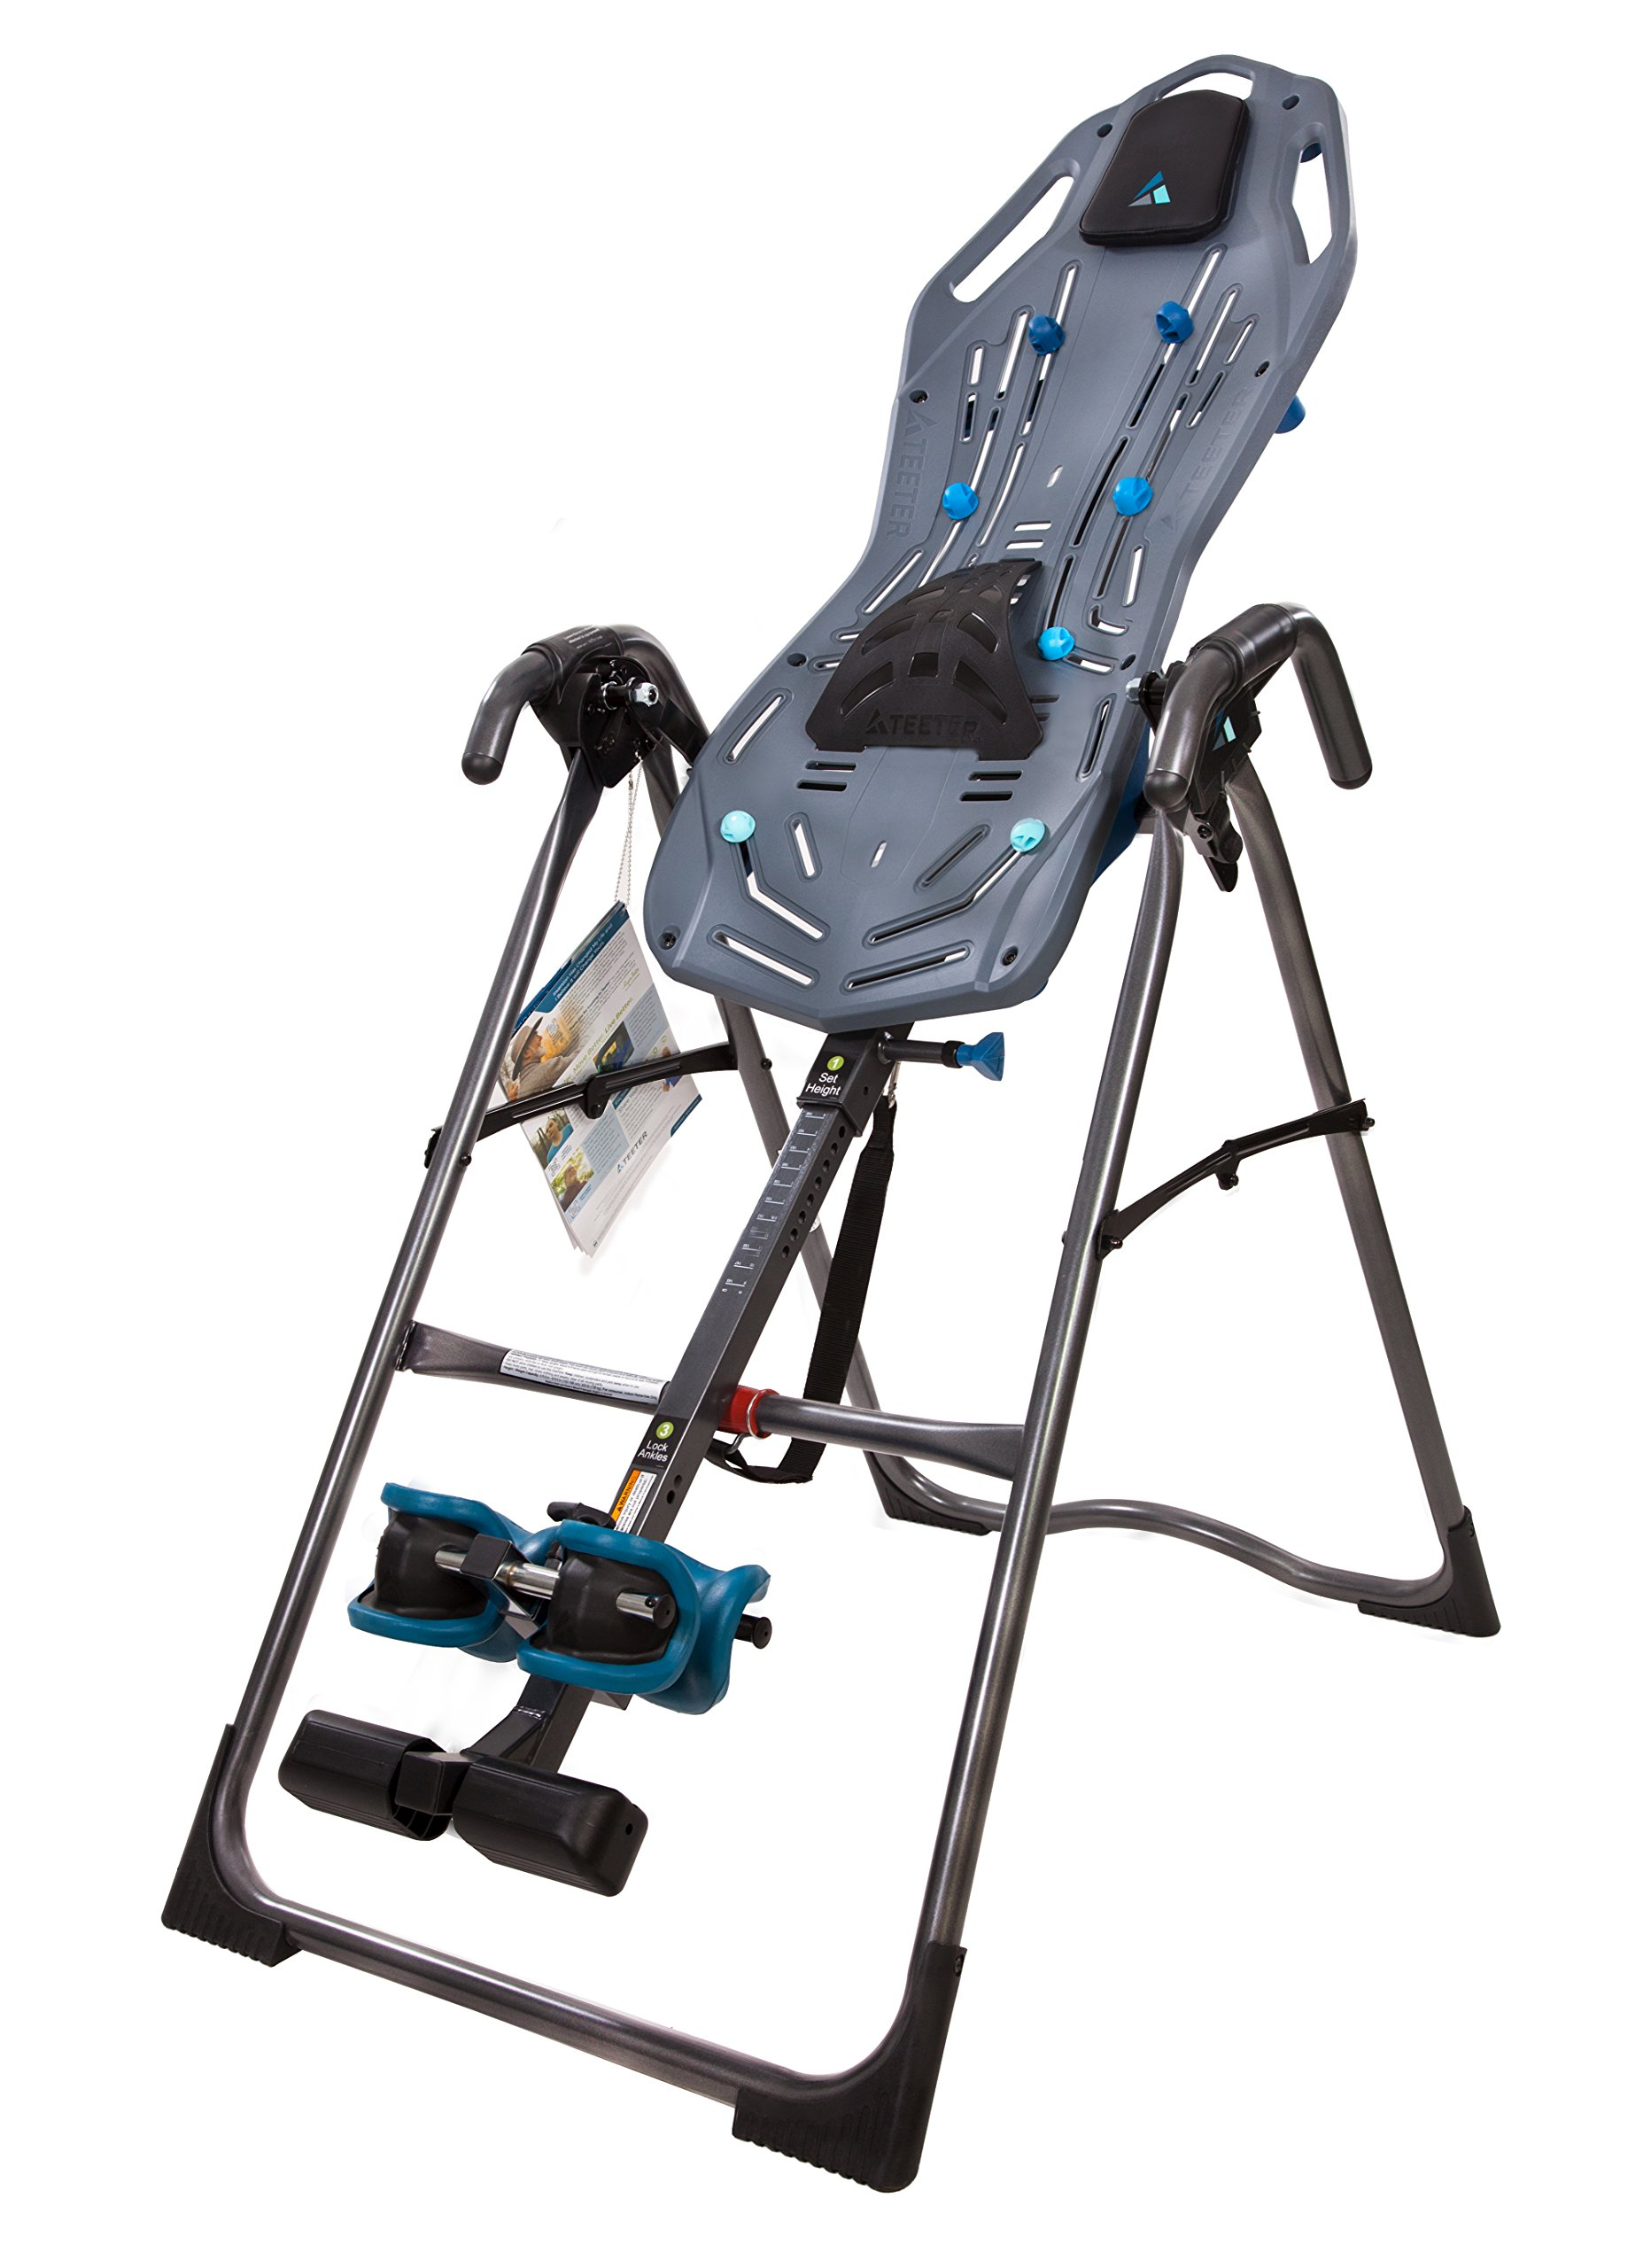 Teeter FitSpine X-Series Inversion Table - X1